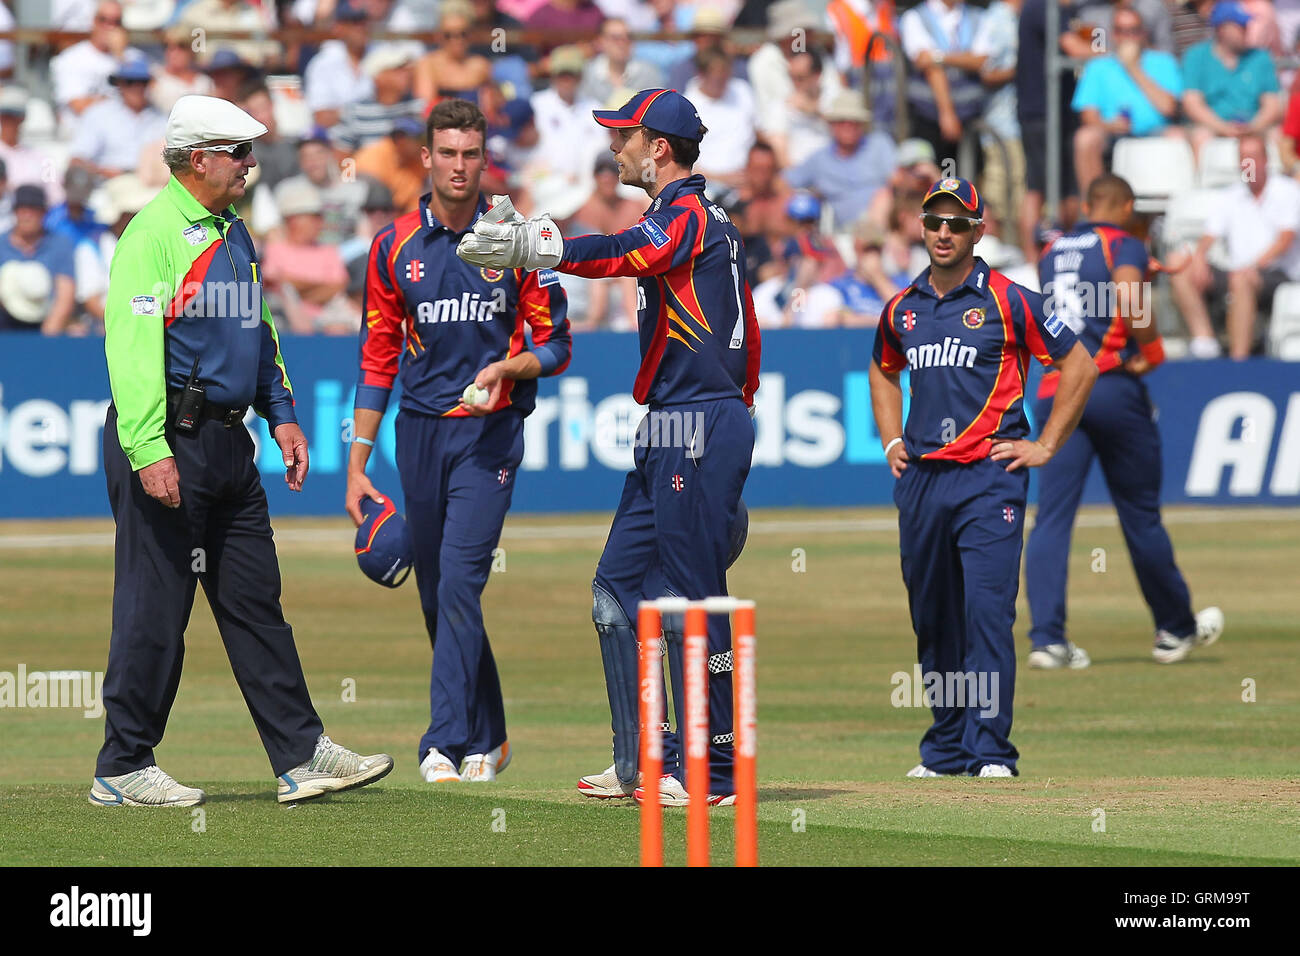 James Foster of Essex (C) protests to umpire George Sharp after 12 penalty runs are added to the Sussex score for - Stock Image